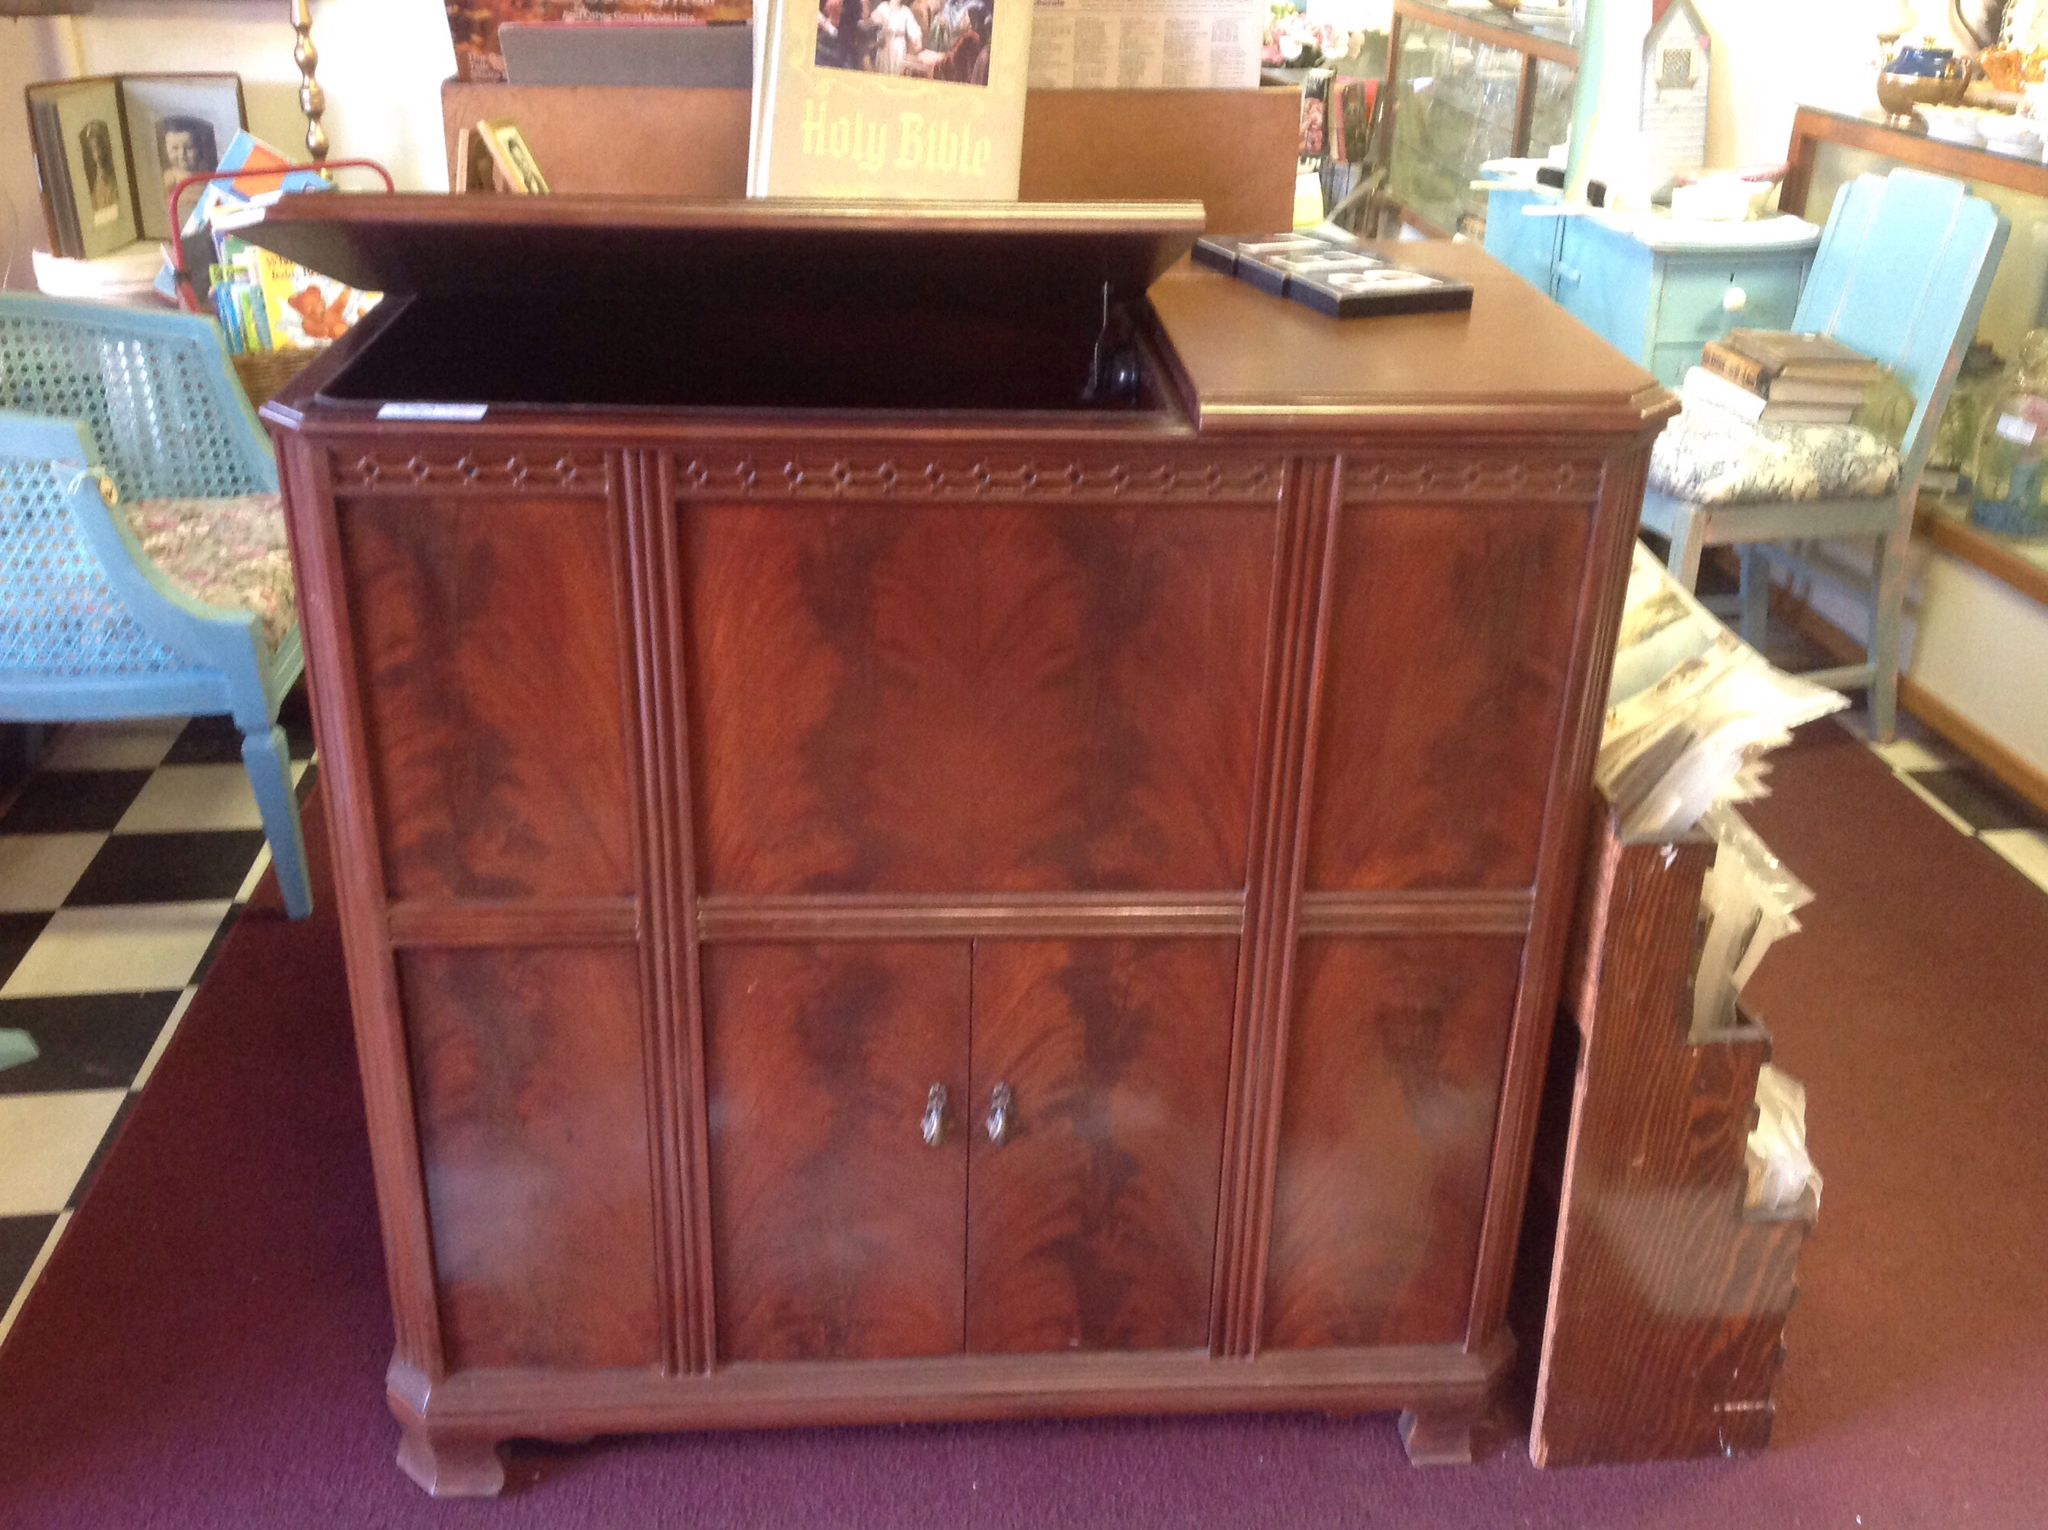 Old Working Capehart Radio and Records Player Cabinet